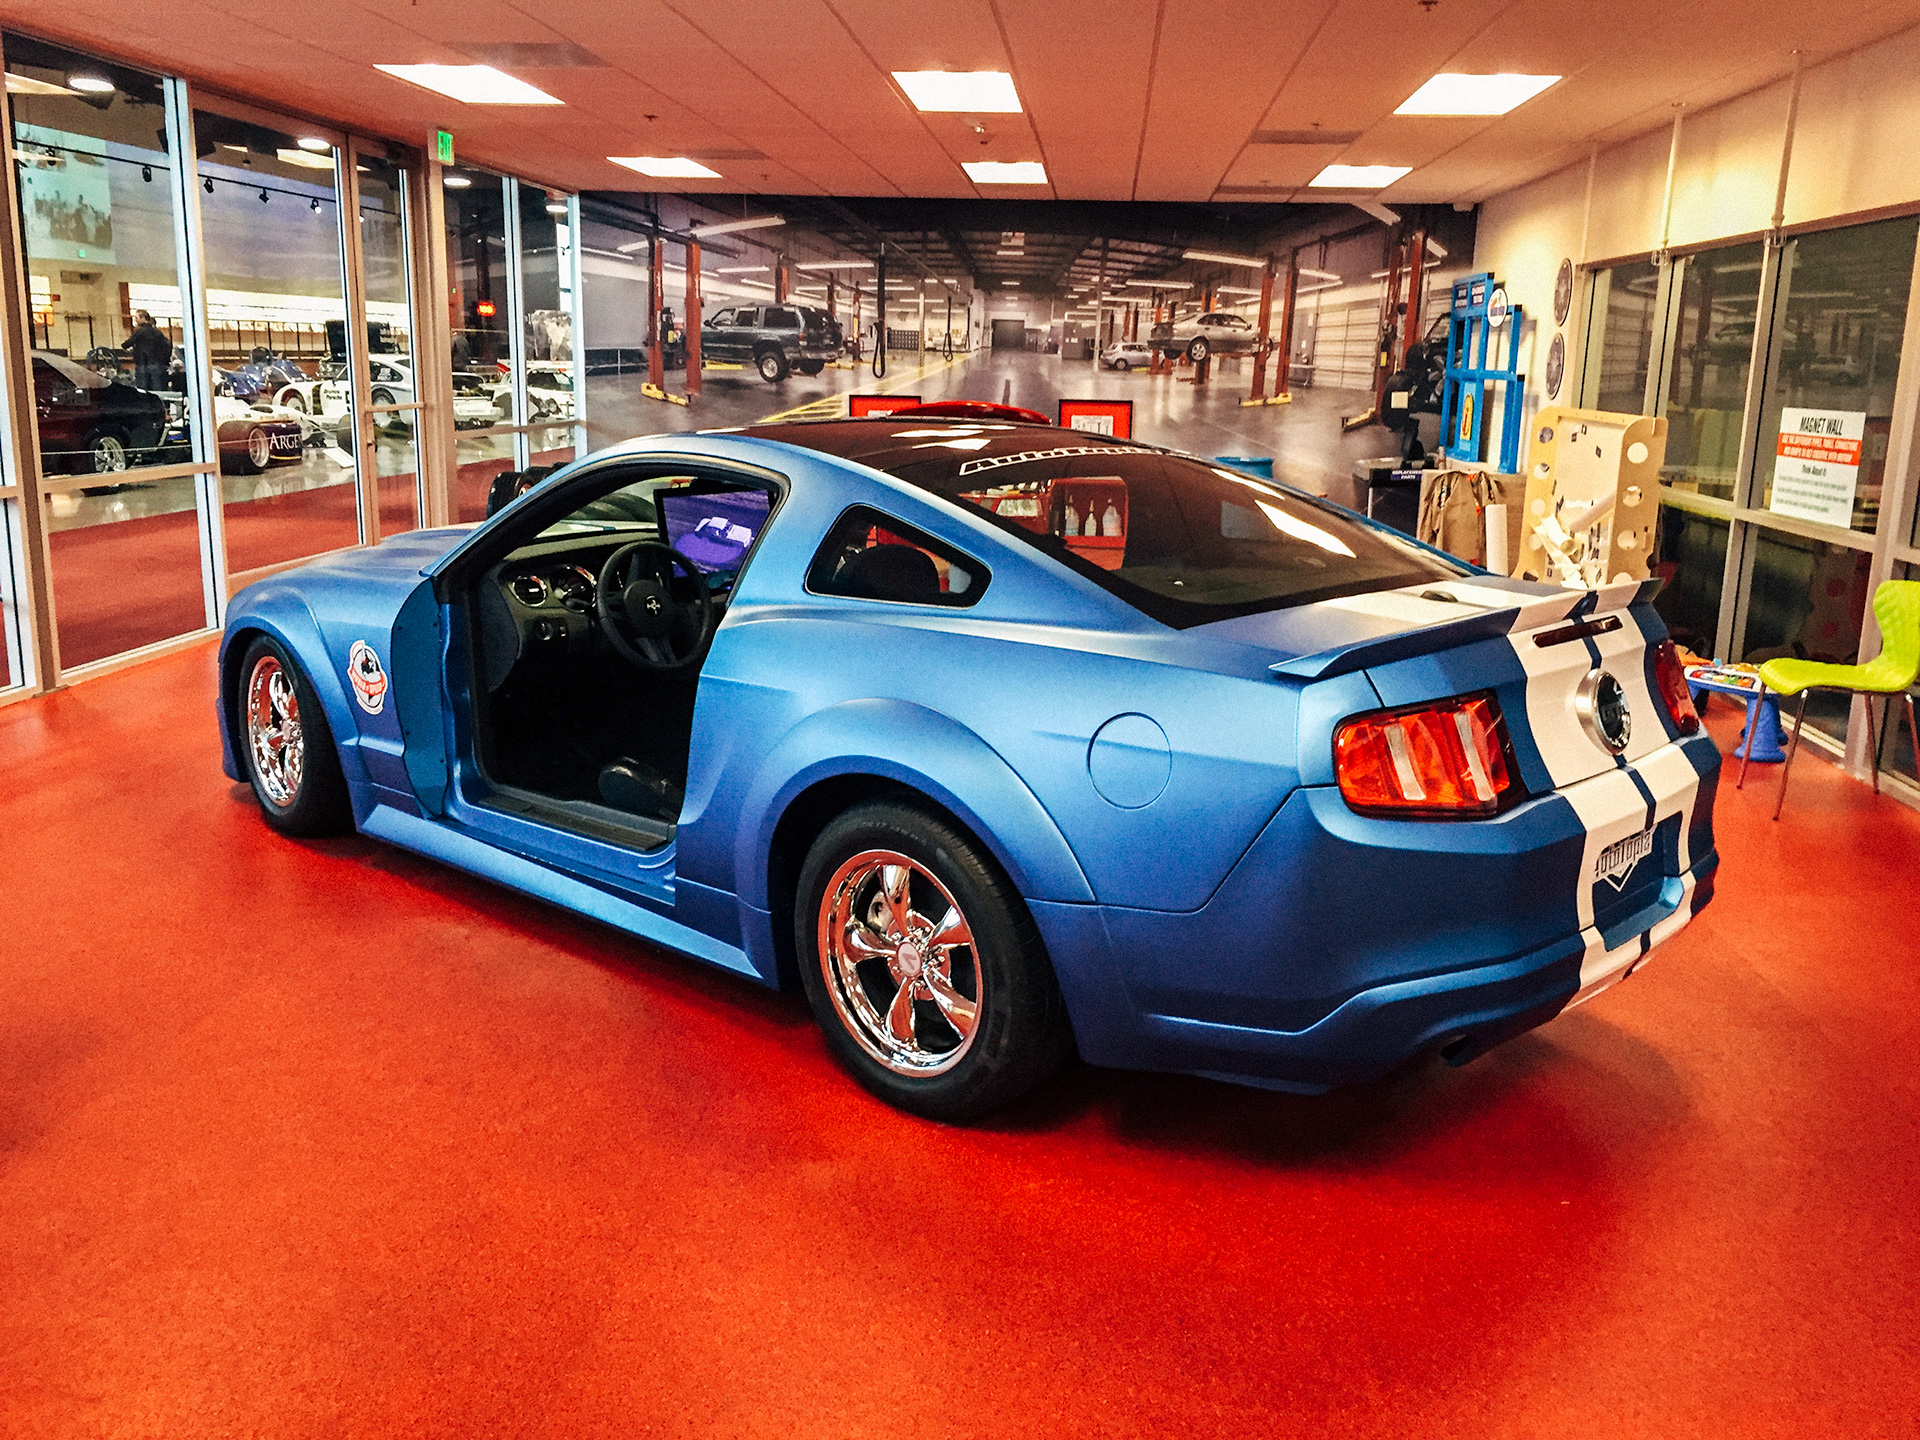 Blue ford mustang interactive exhibt at the World of Speed Museum